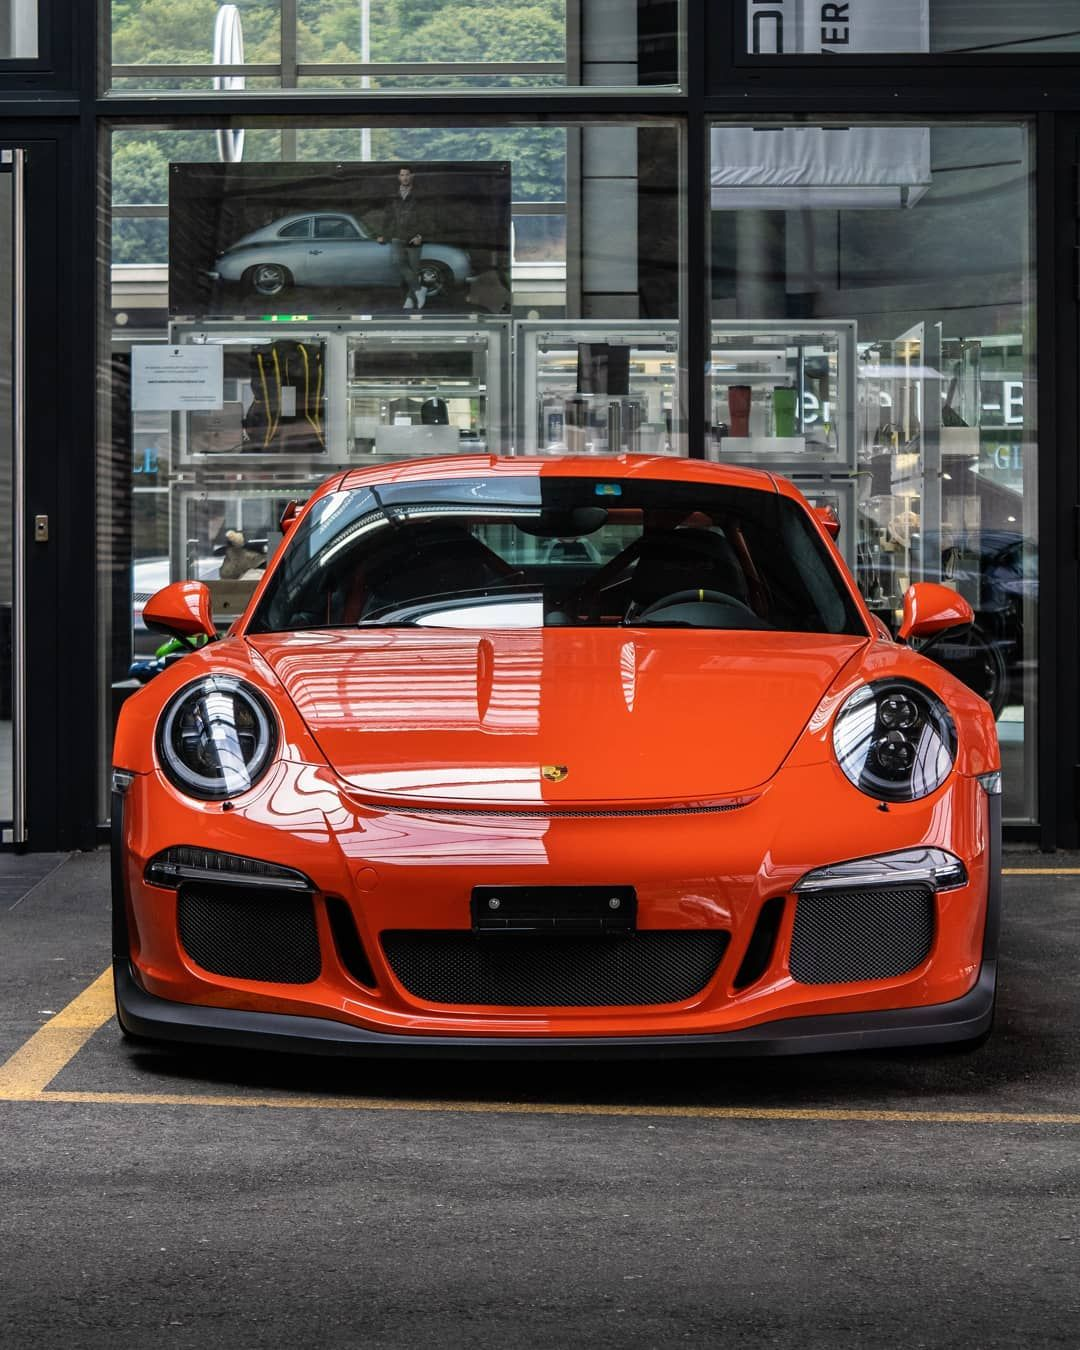 Pin by CHRISTOPHER on Porsche cars Super luxury cars